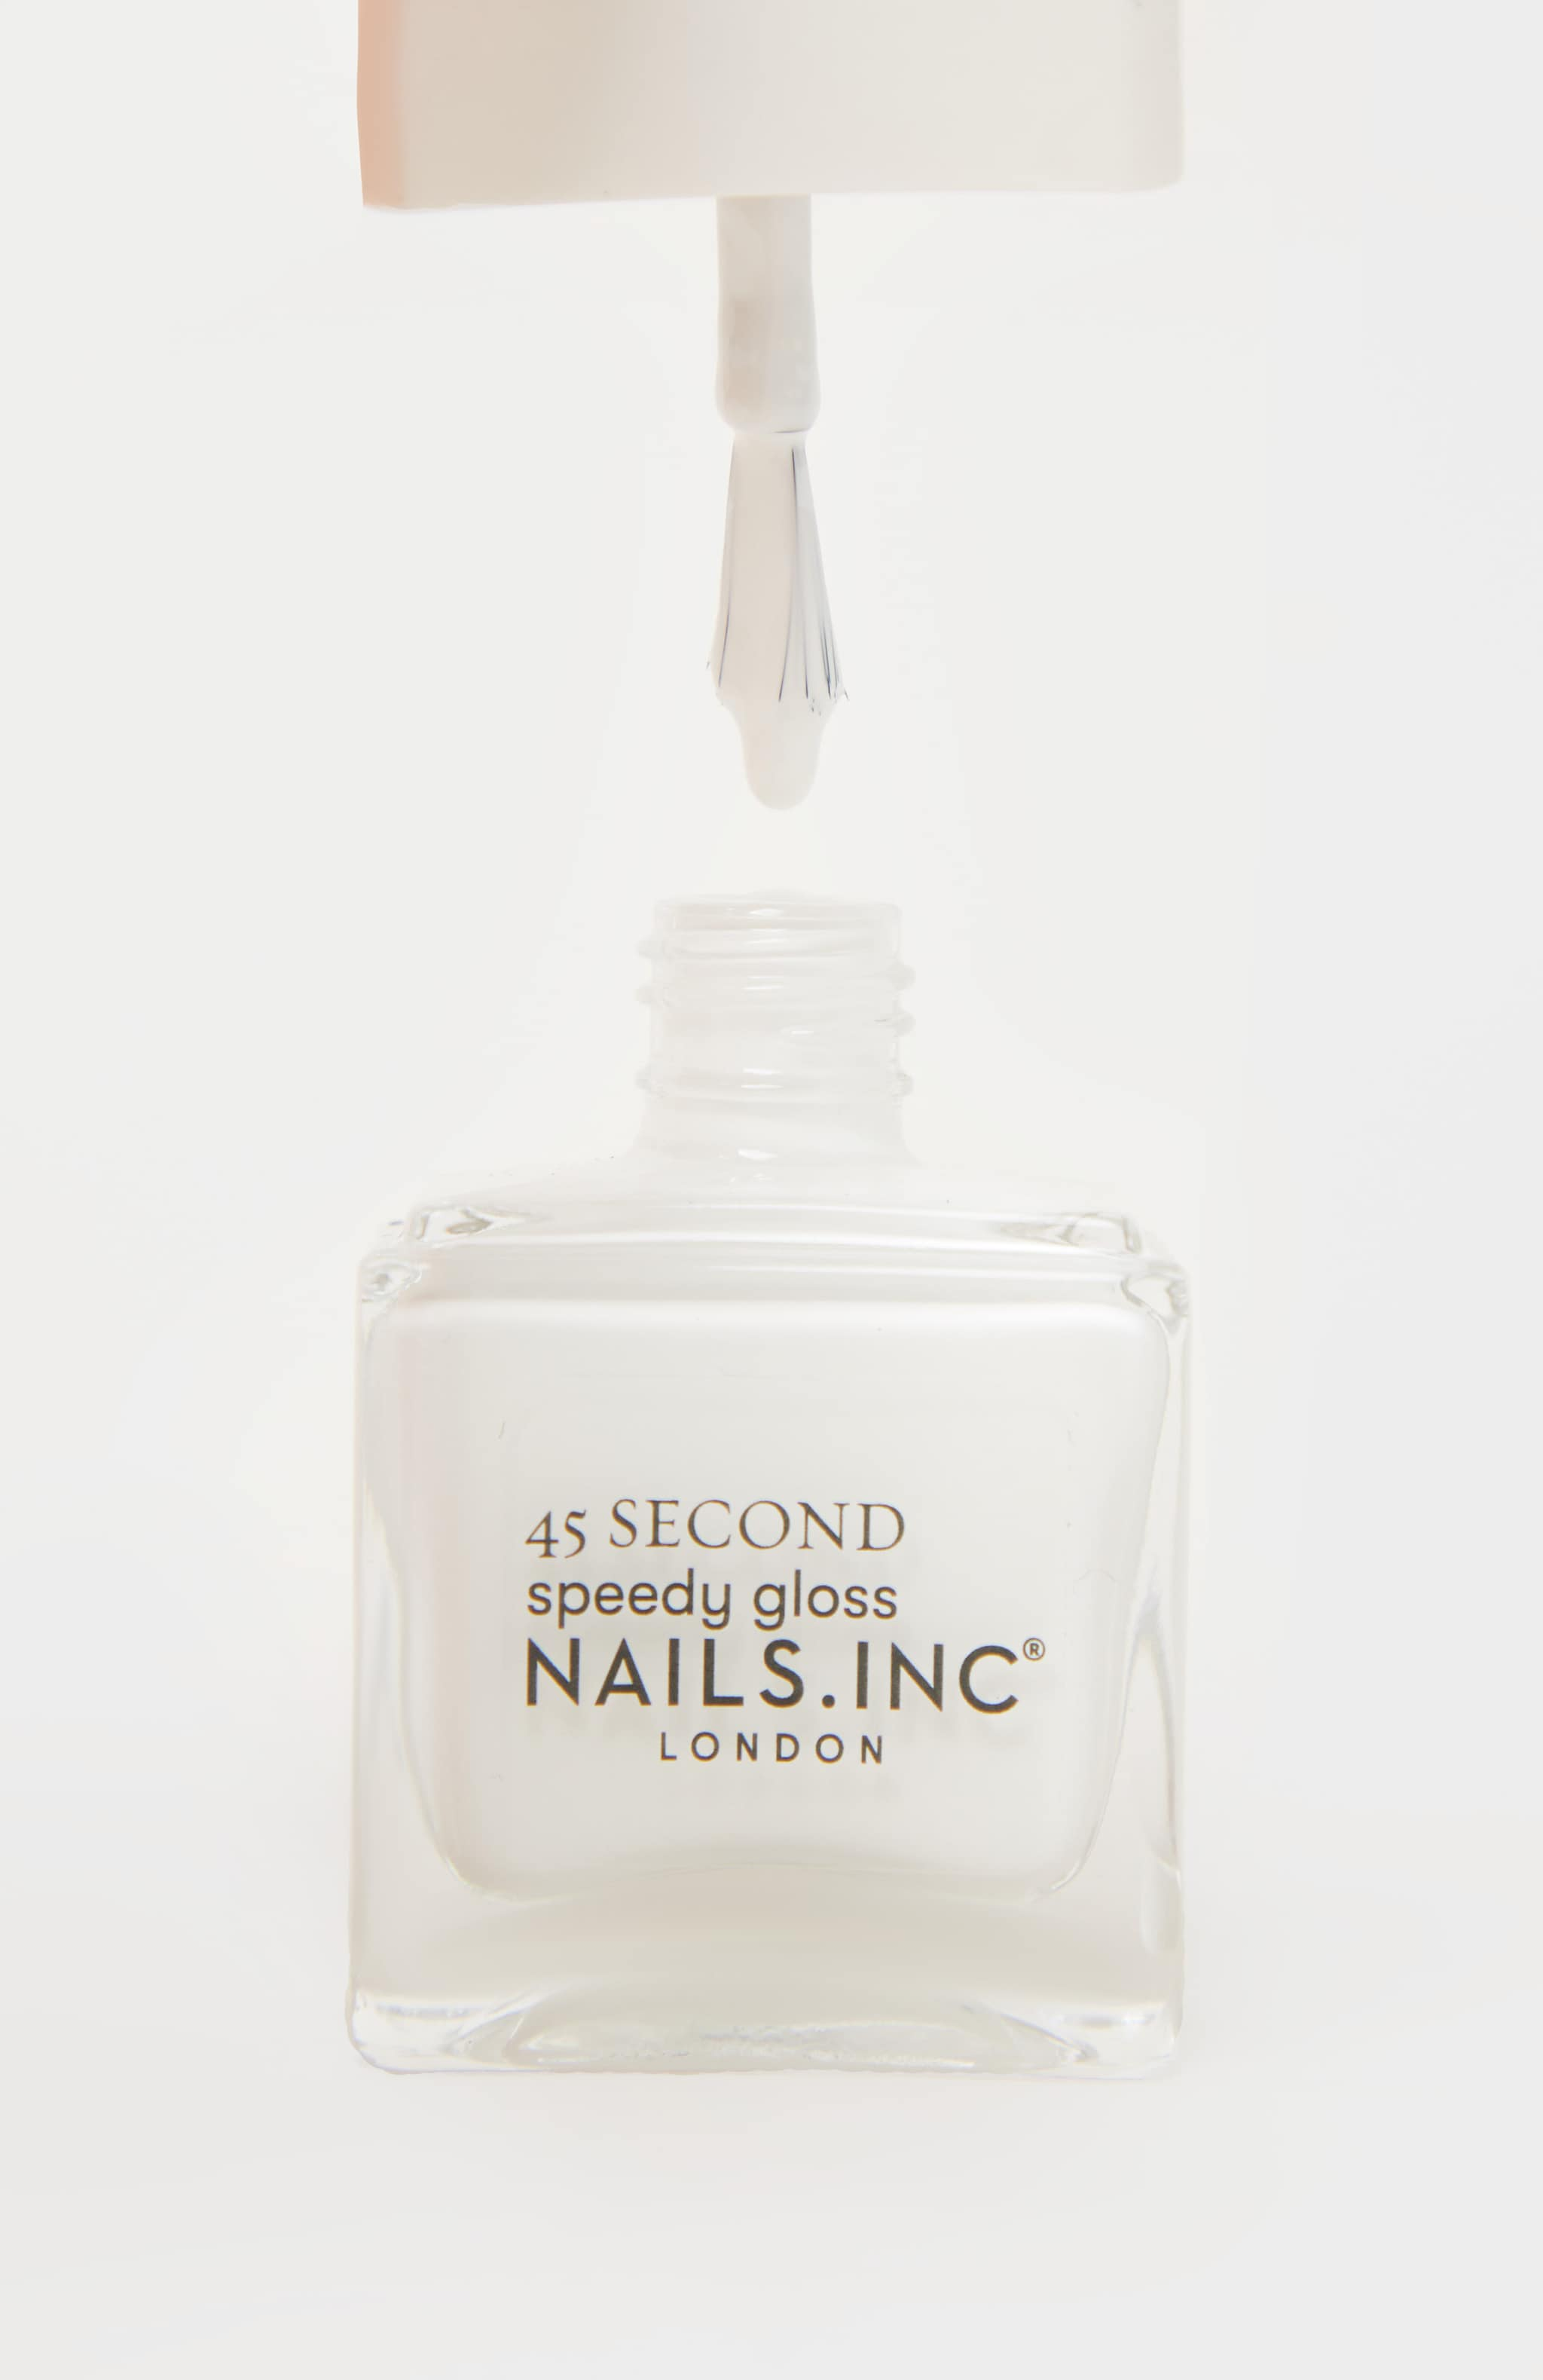 Nails Inc 45 Second Speedy Gloss Find Me In Fulham 2